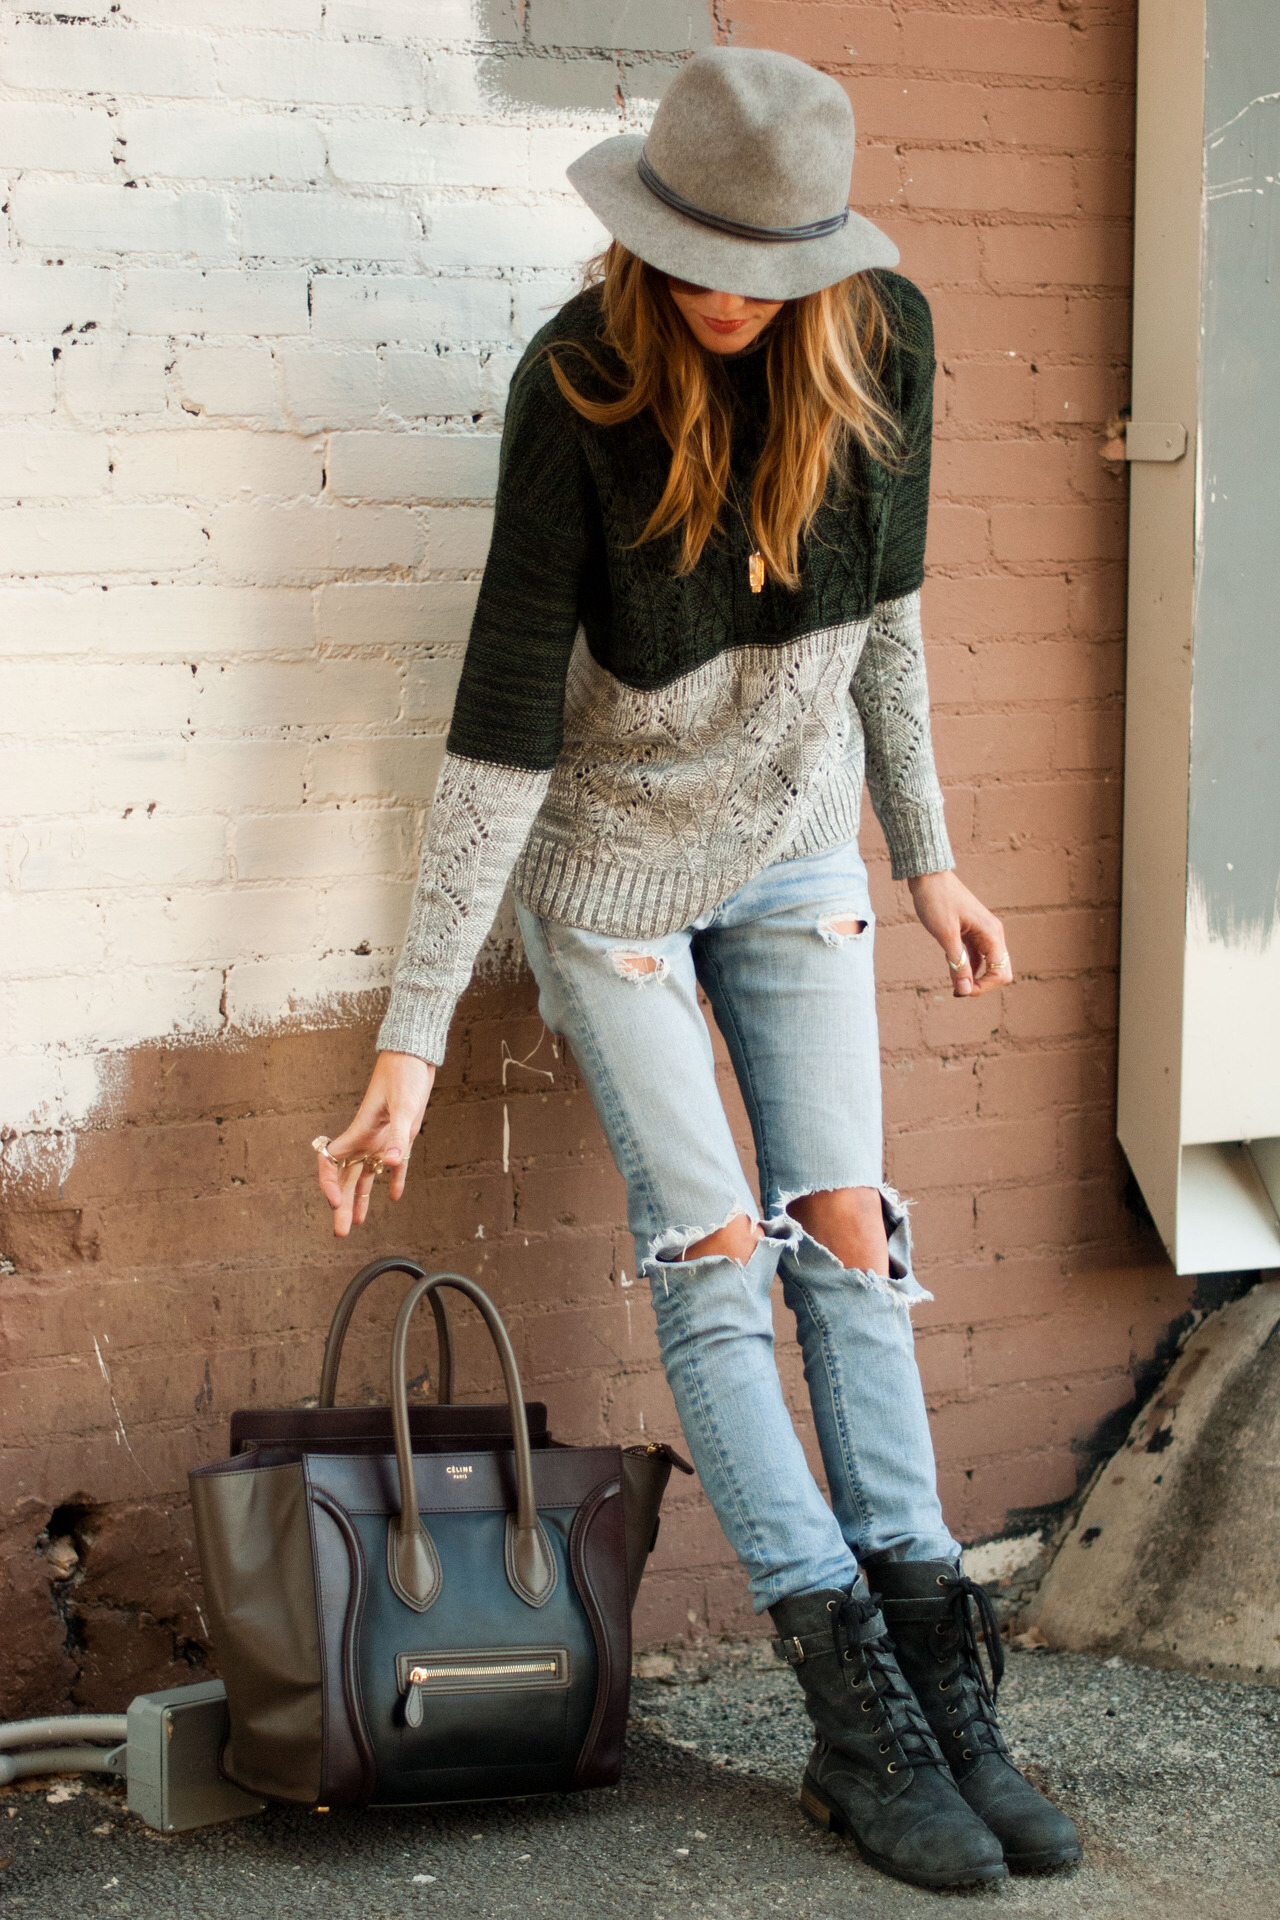 DistressJeans - I love distressed jeans, always have. I dress pretty casual and like it when girls do too. I'm not a big fan of heels unless it is with a very dressy, dress. No chunky, big boots!________________________Distressed jeans are my kind of classy.